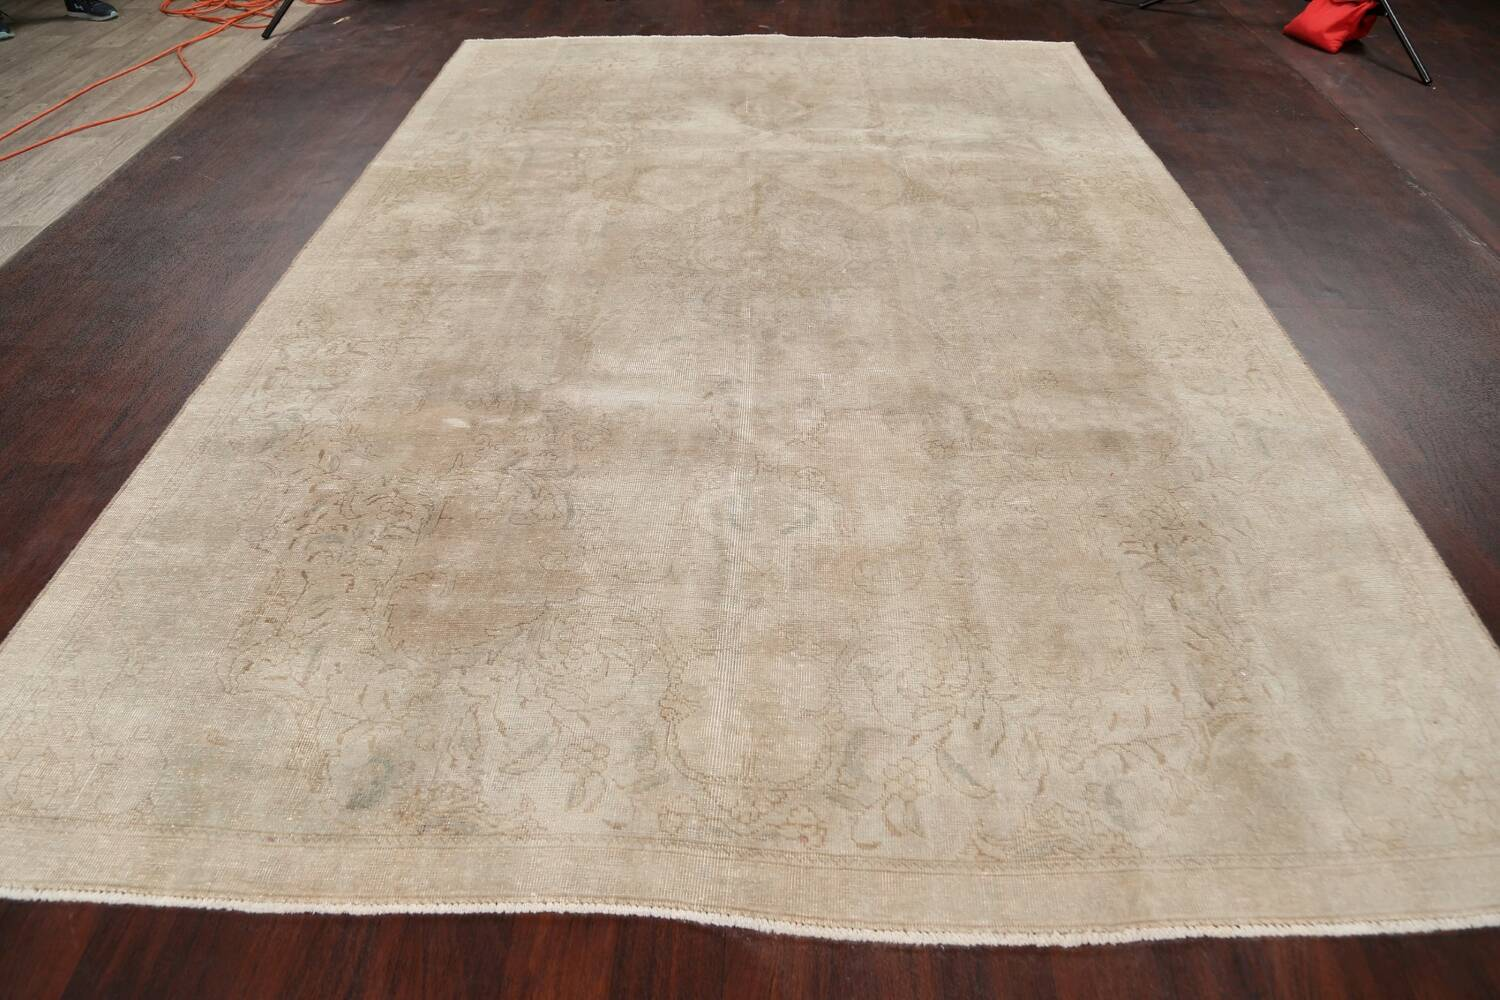 Antique Muted Floral Tabriz Persian Area Rug 7x11 image 15